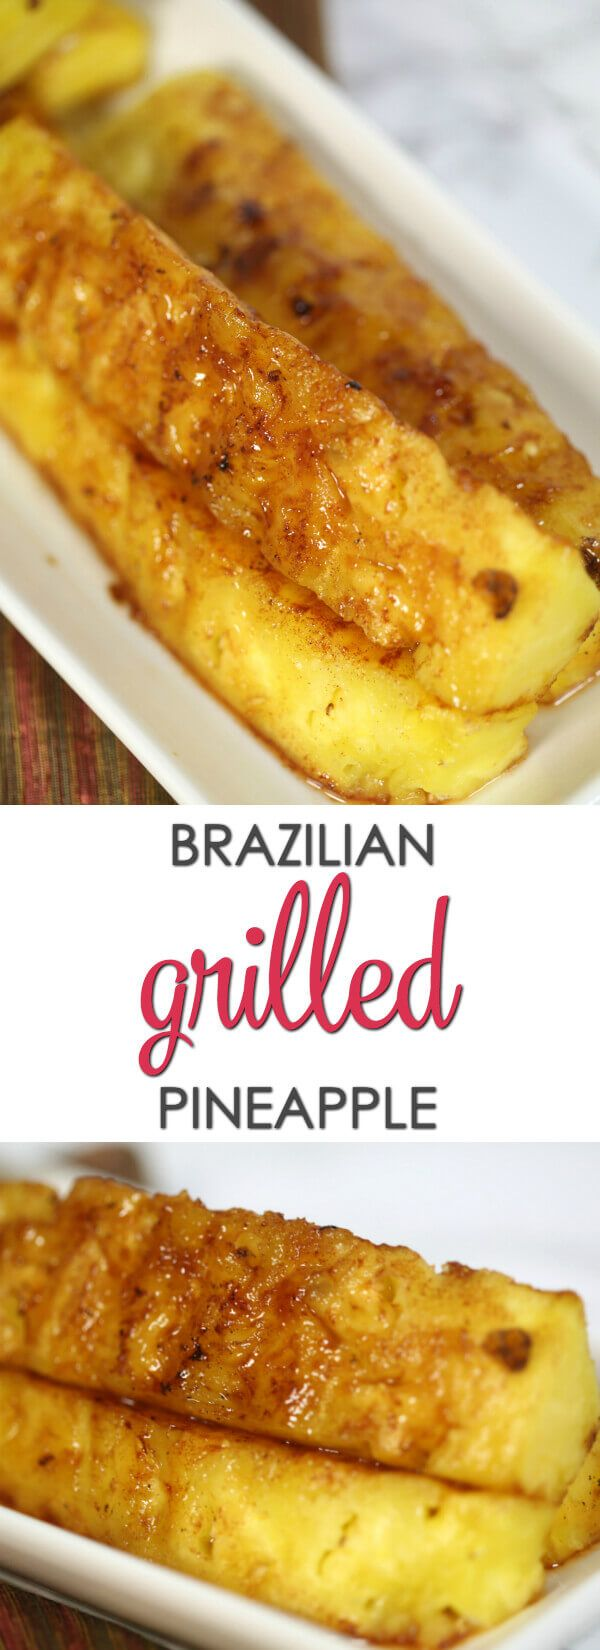 Brazilian grilled pineapple this is one of my favorite grilled brazilian grilled pineapple this is one of my favorite grilled pineapple recipes its so forumfinder Choice Image